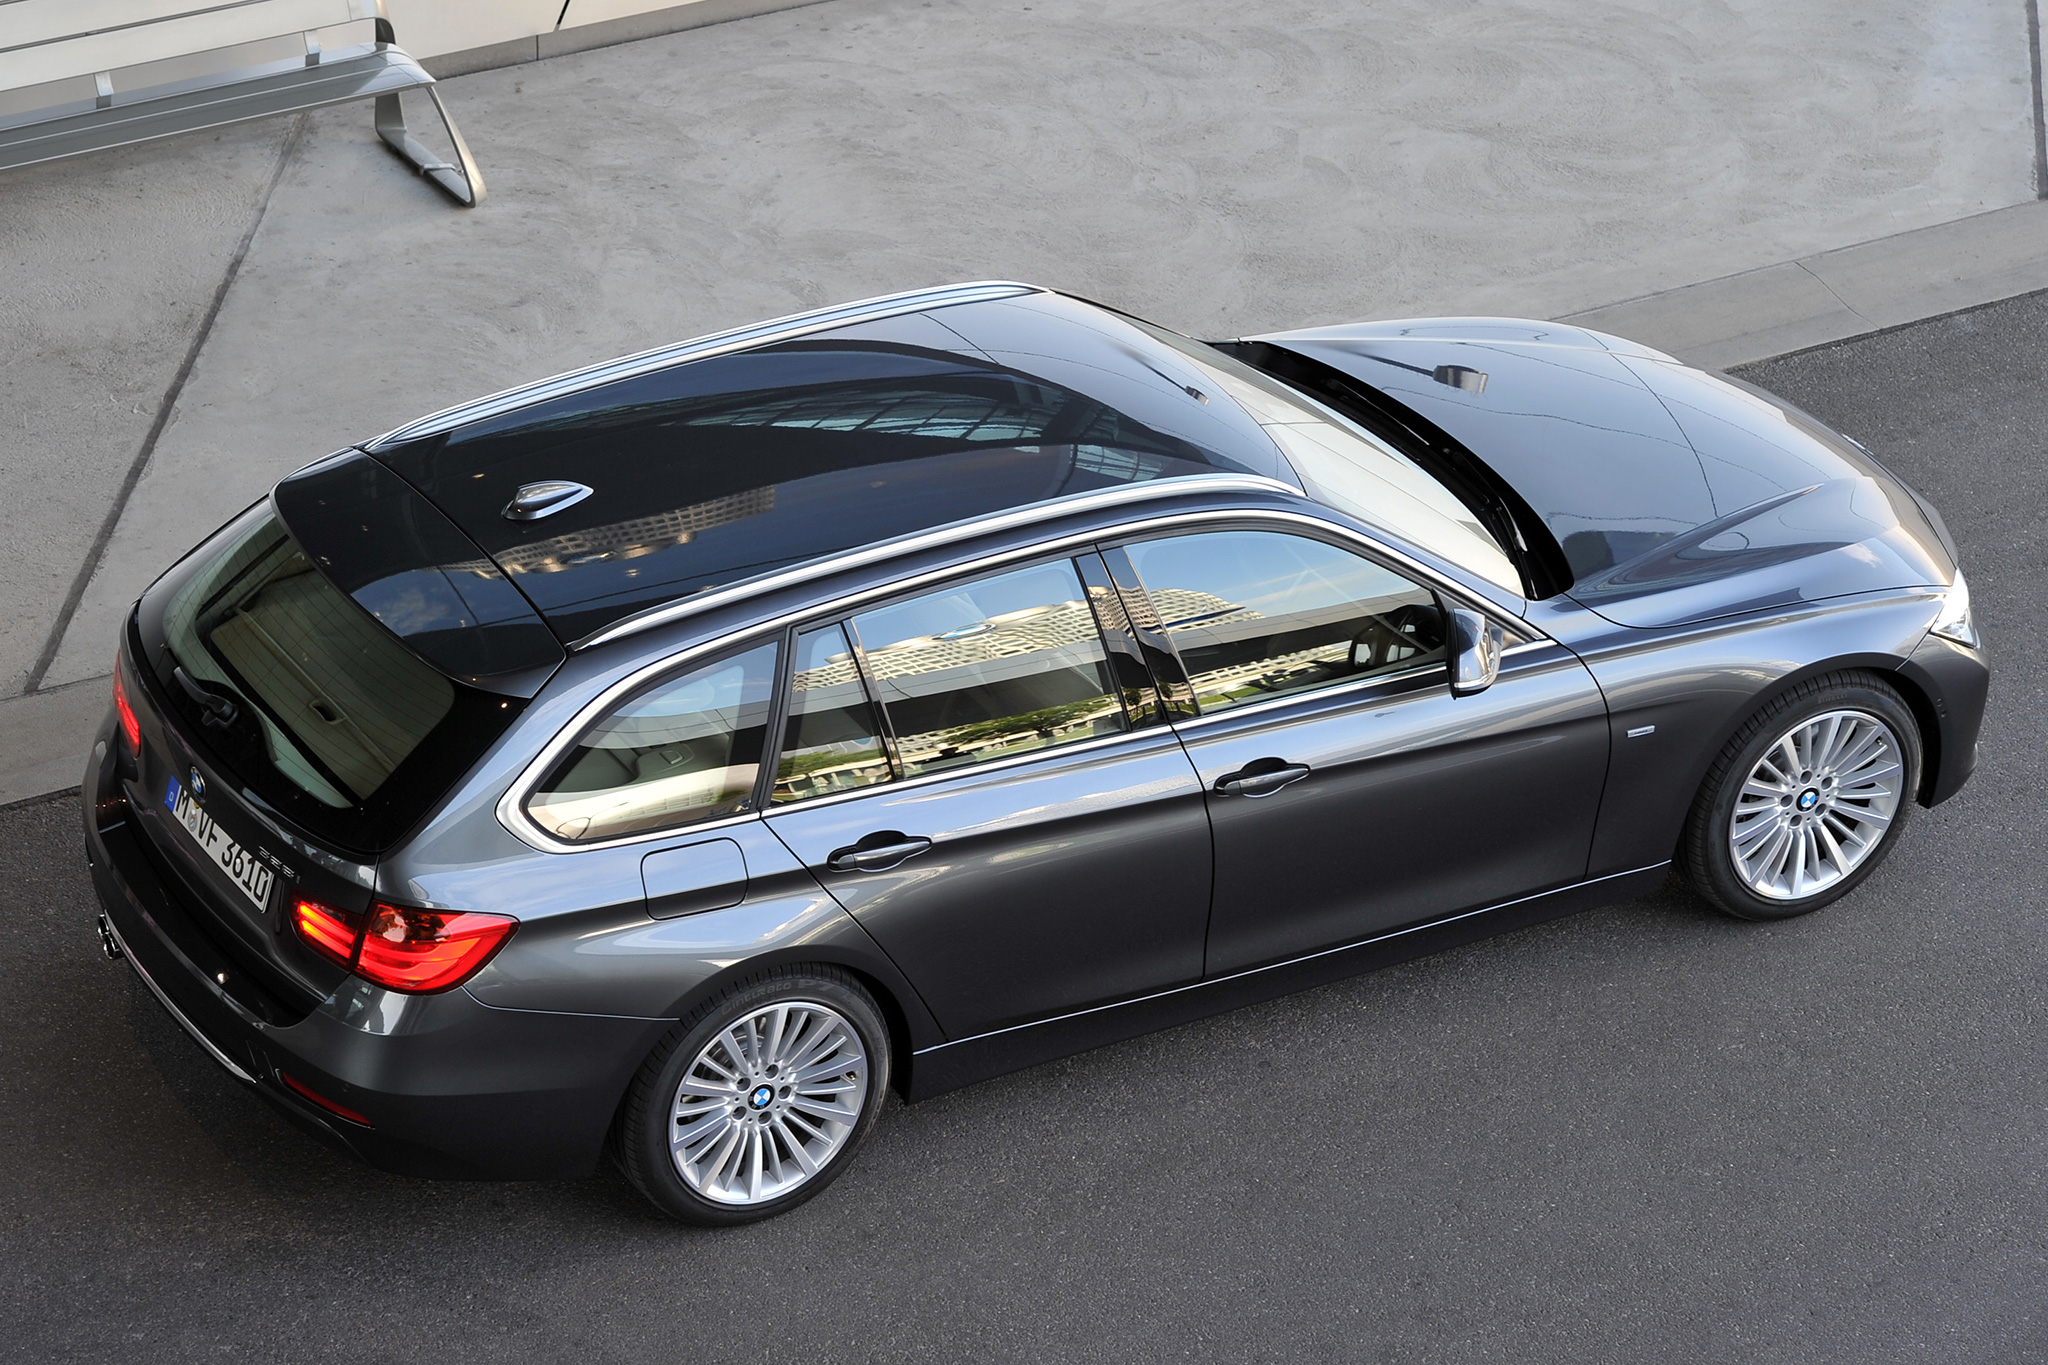 Panoramic Roof Cars >> Vehicles Offering Panoramic Sunroofs For Less Than 50 000 Motortrend